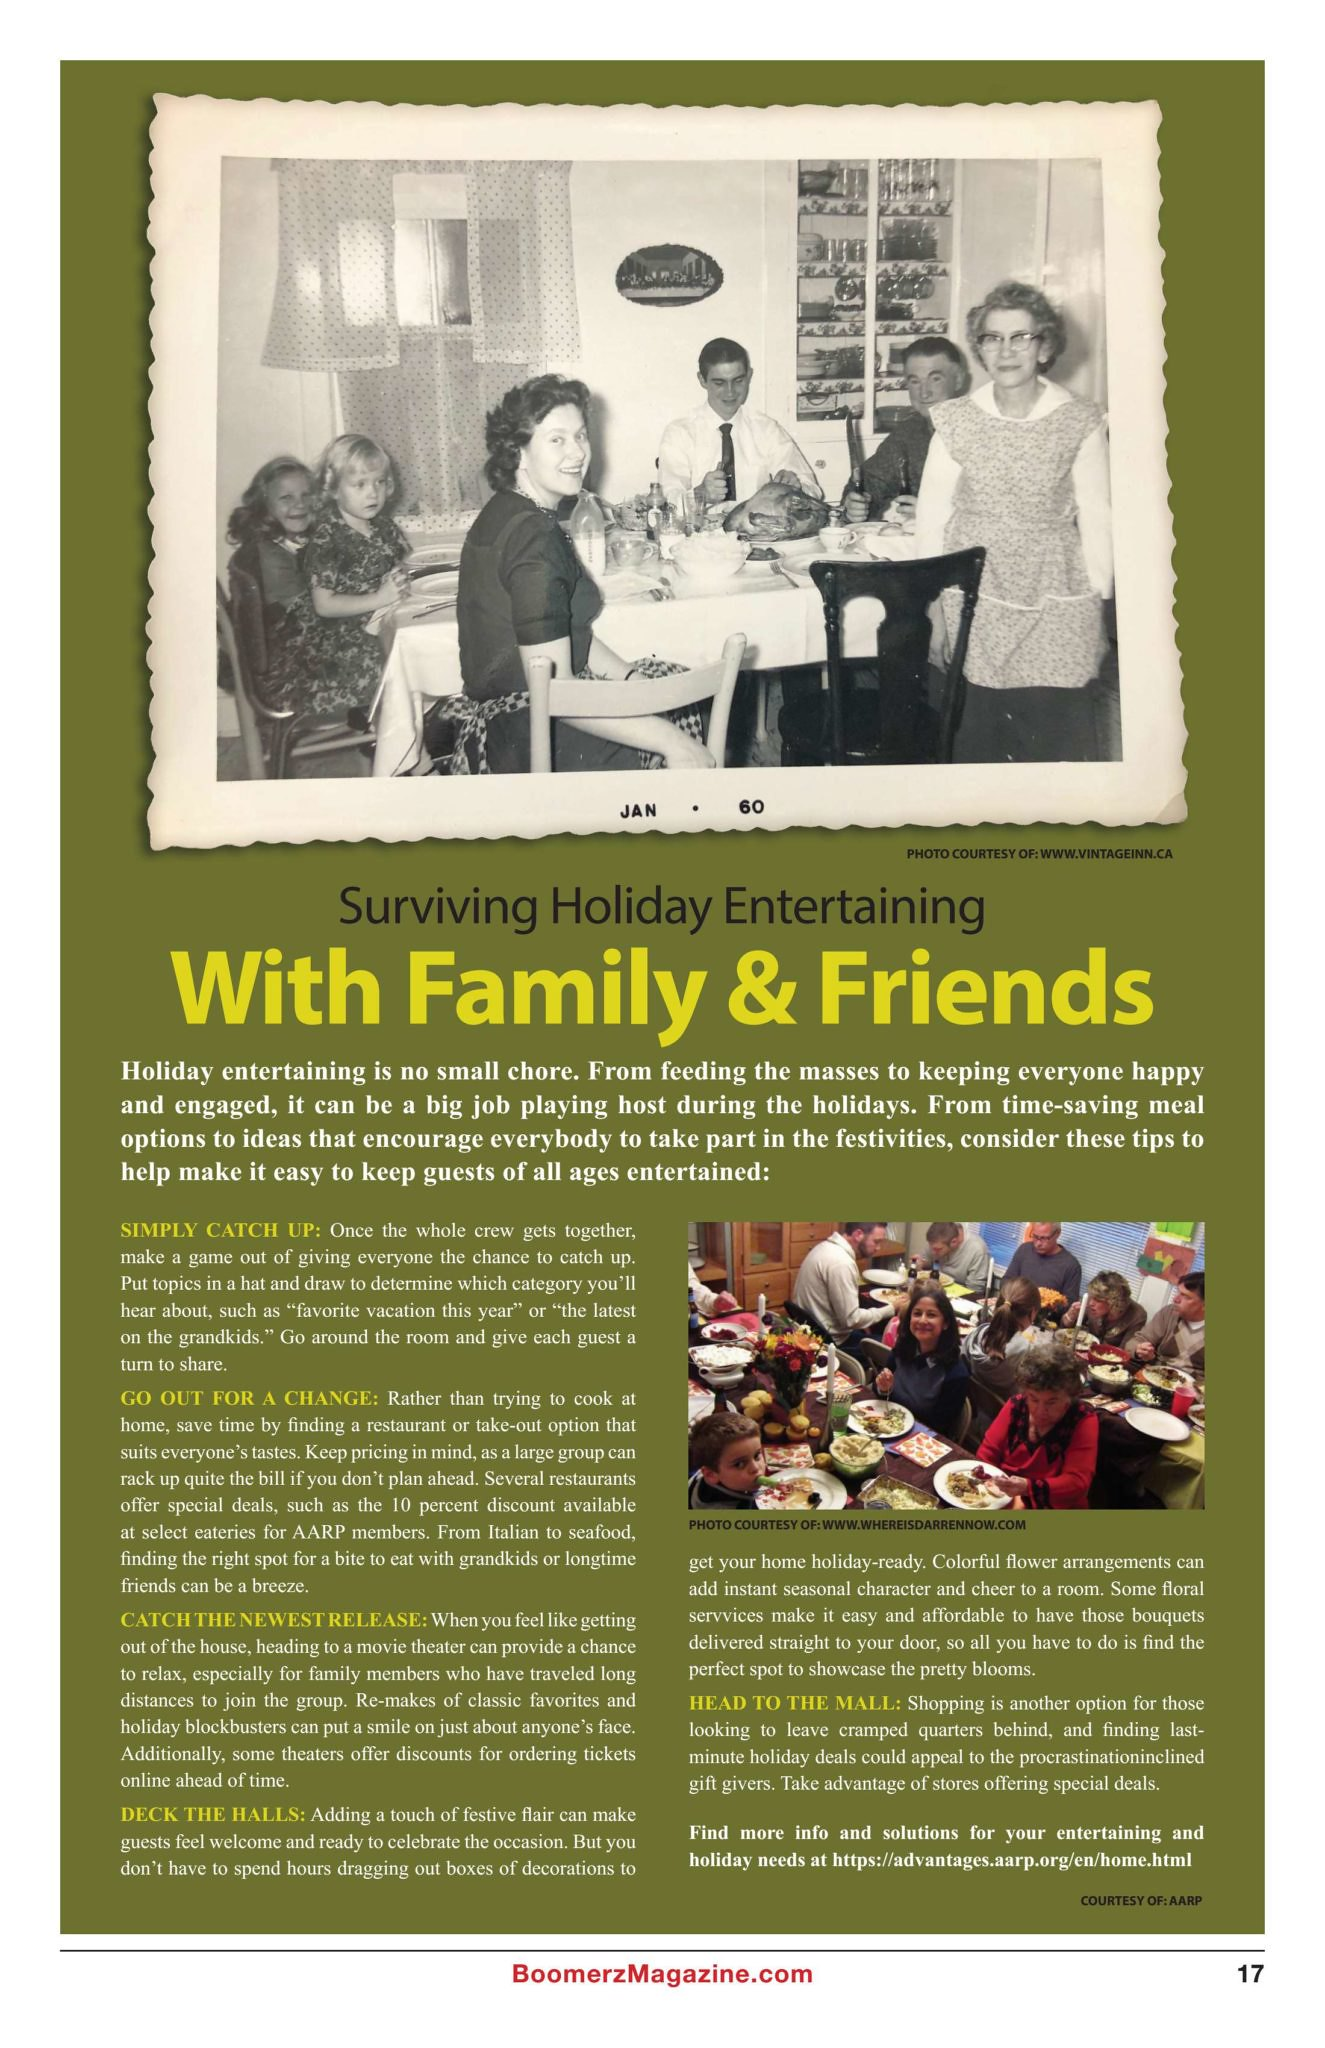 Boomerz Magazine 2018 November Surviving Holiday Entertaining With Family & Friends